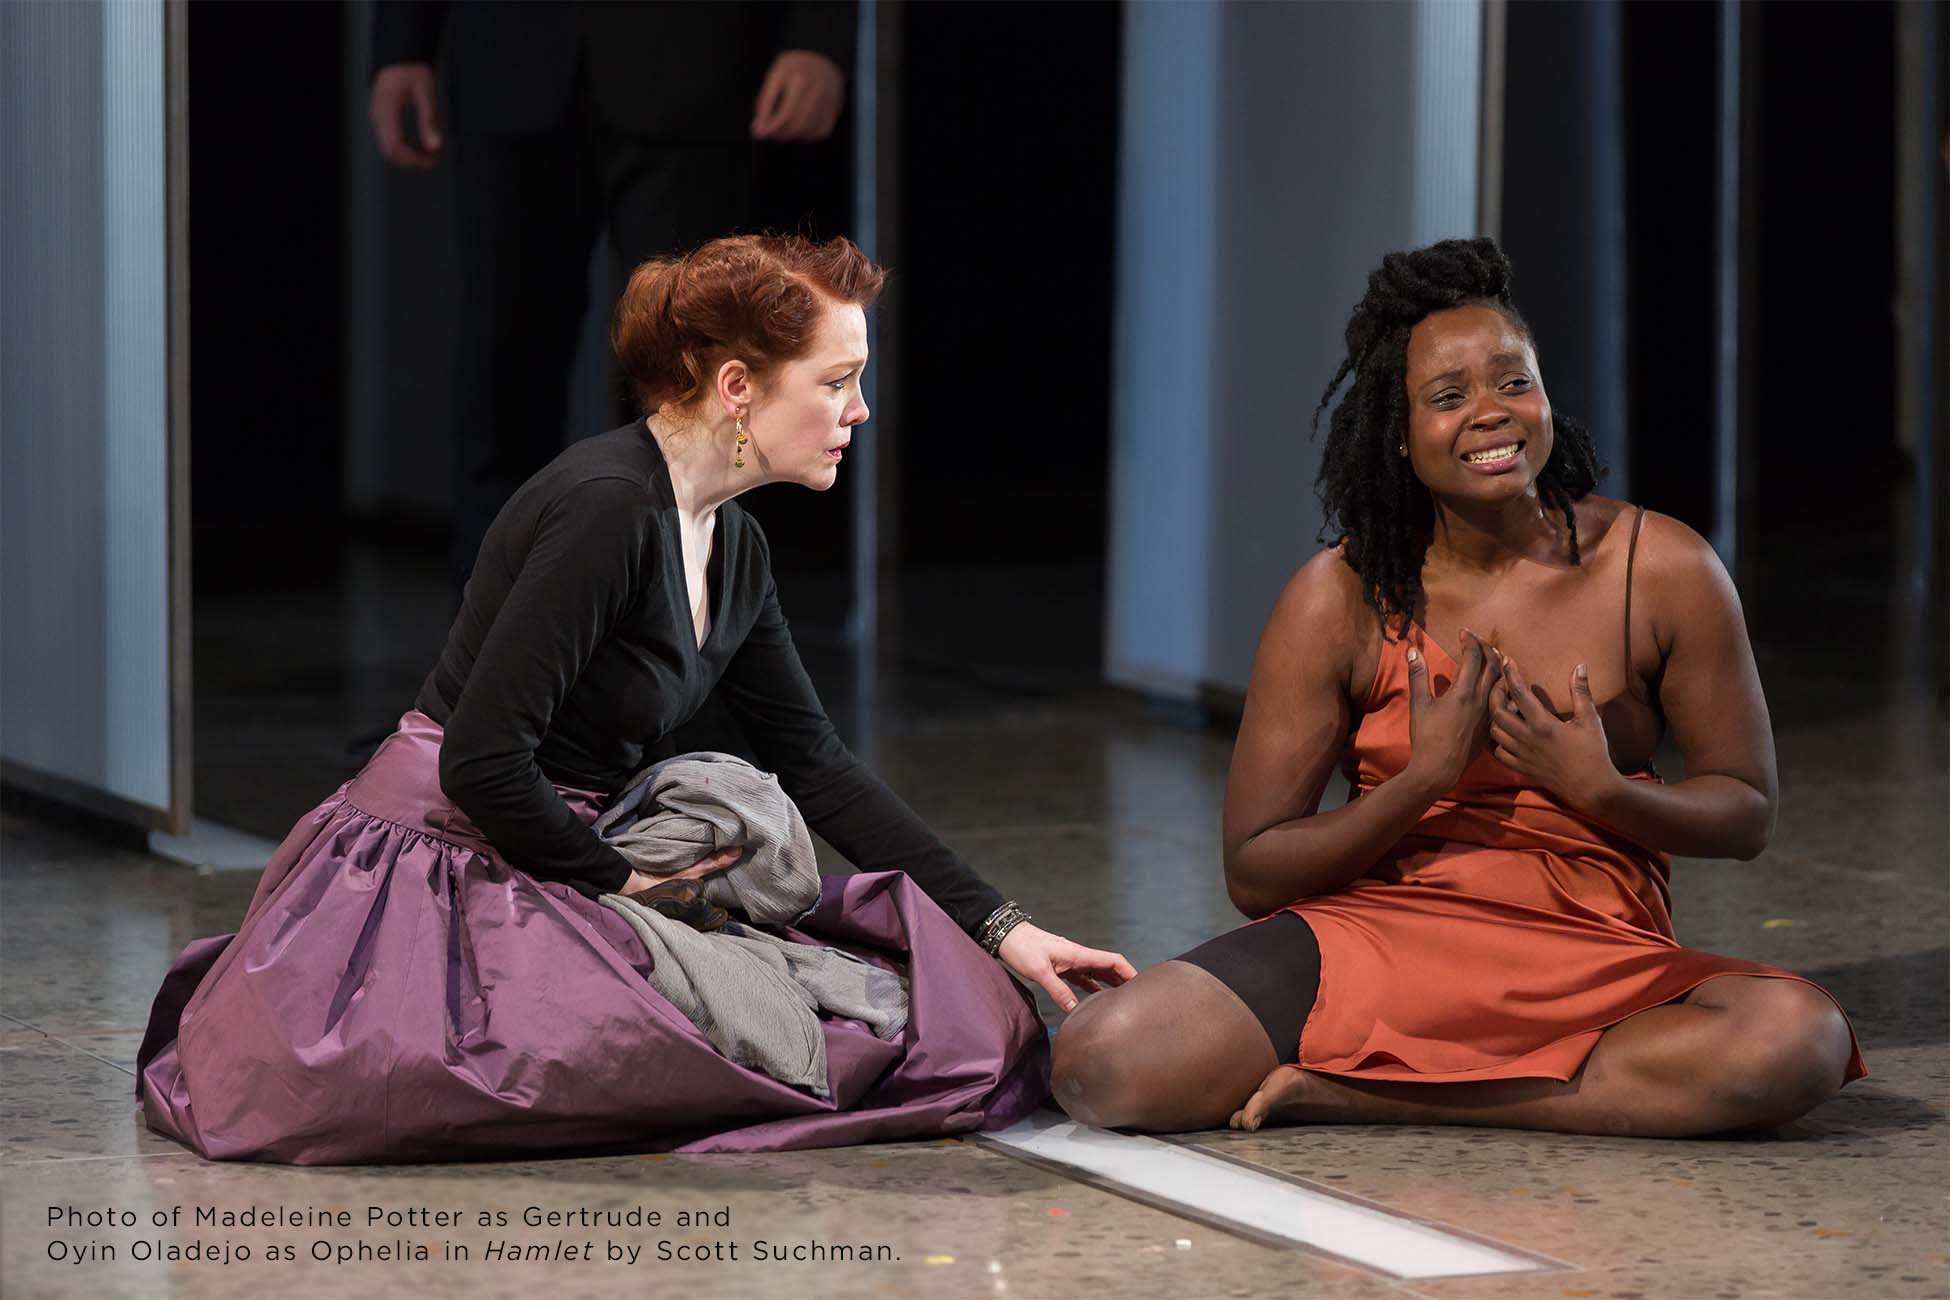 Photo of Madeleine Potter and Oyin Oladejo by Scott Suchman.